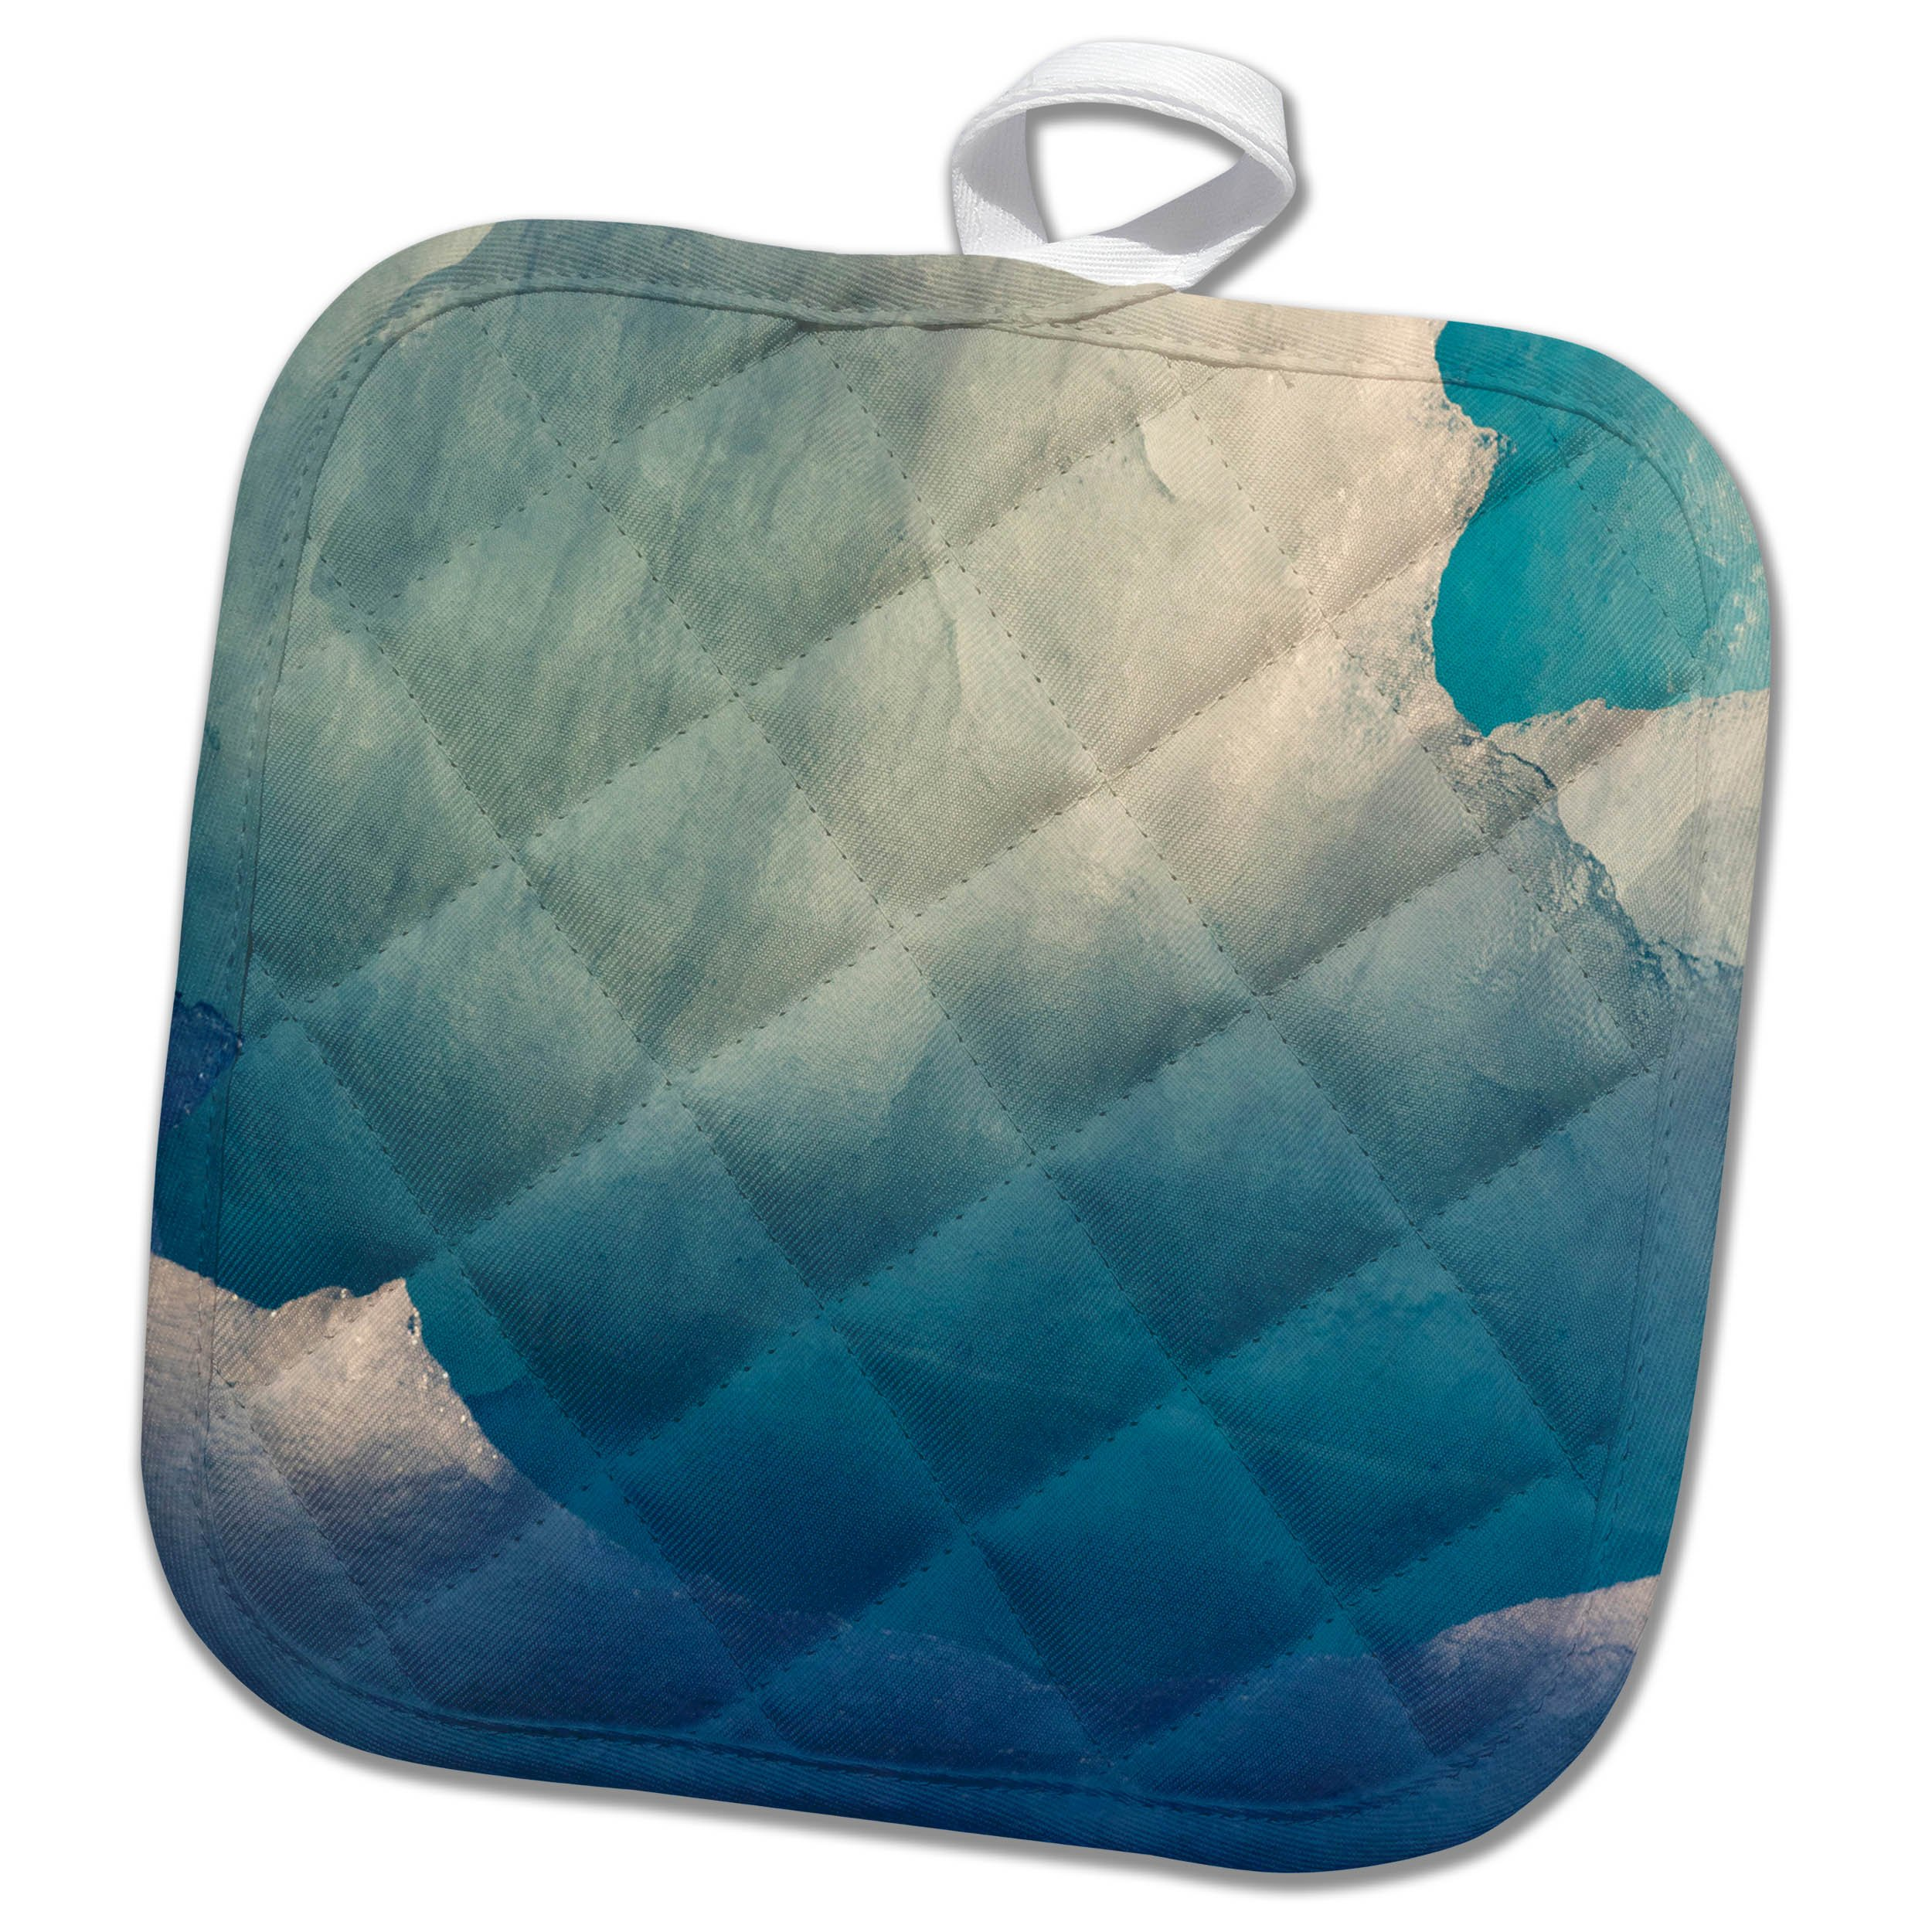 3dRose Danita Delimont - Abstracts - Icebergs patterns, southern Greenland, Denmark - 8x8 Potholder (phl_277954_1)